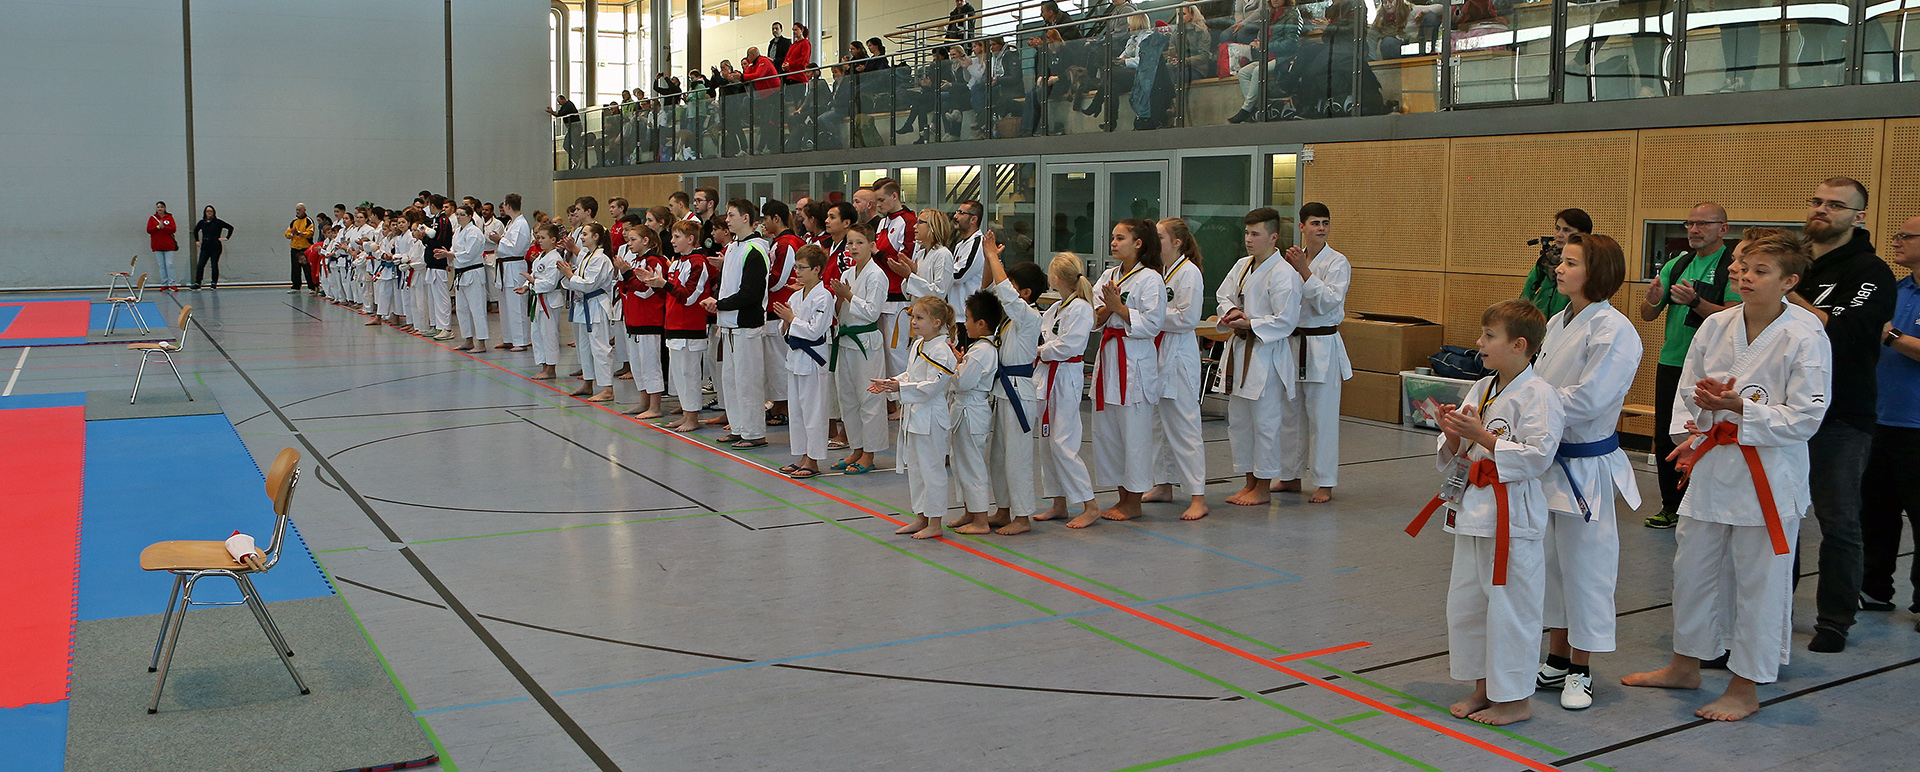 JKD Cup am 17. November 2018 in Dessau-Roßlau